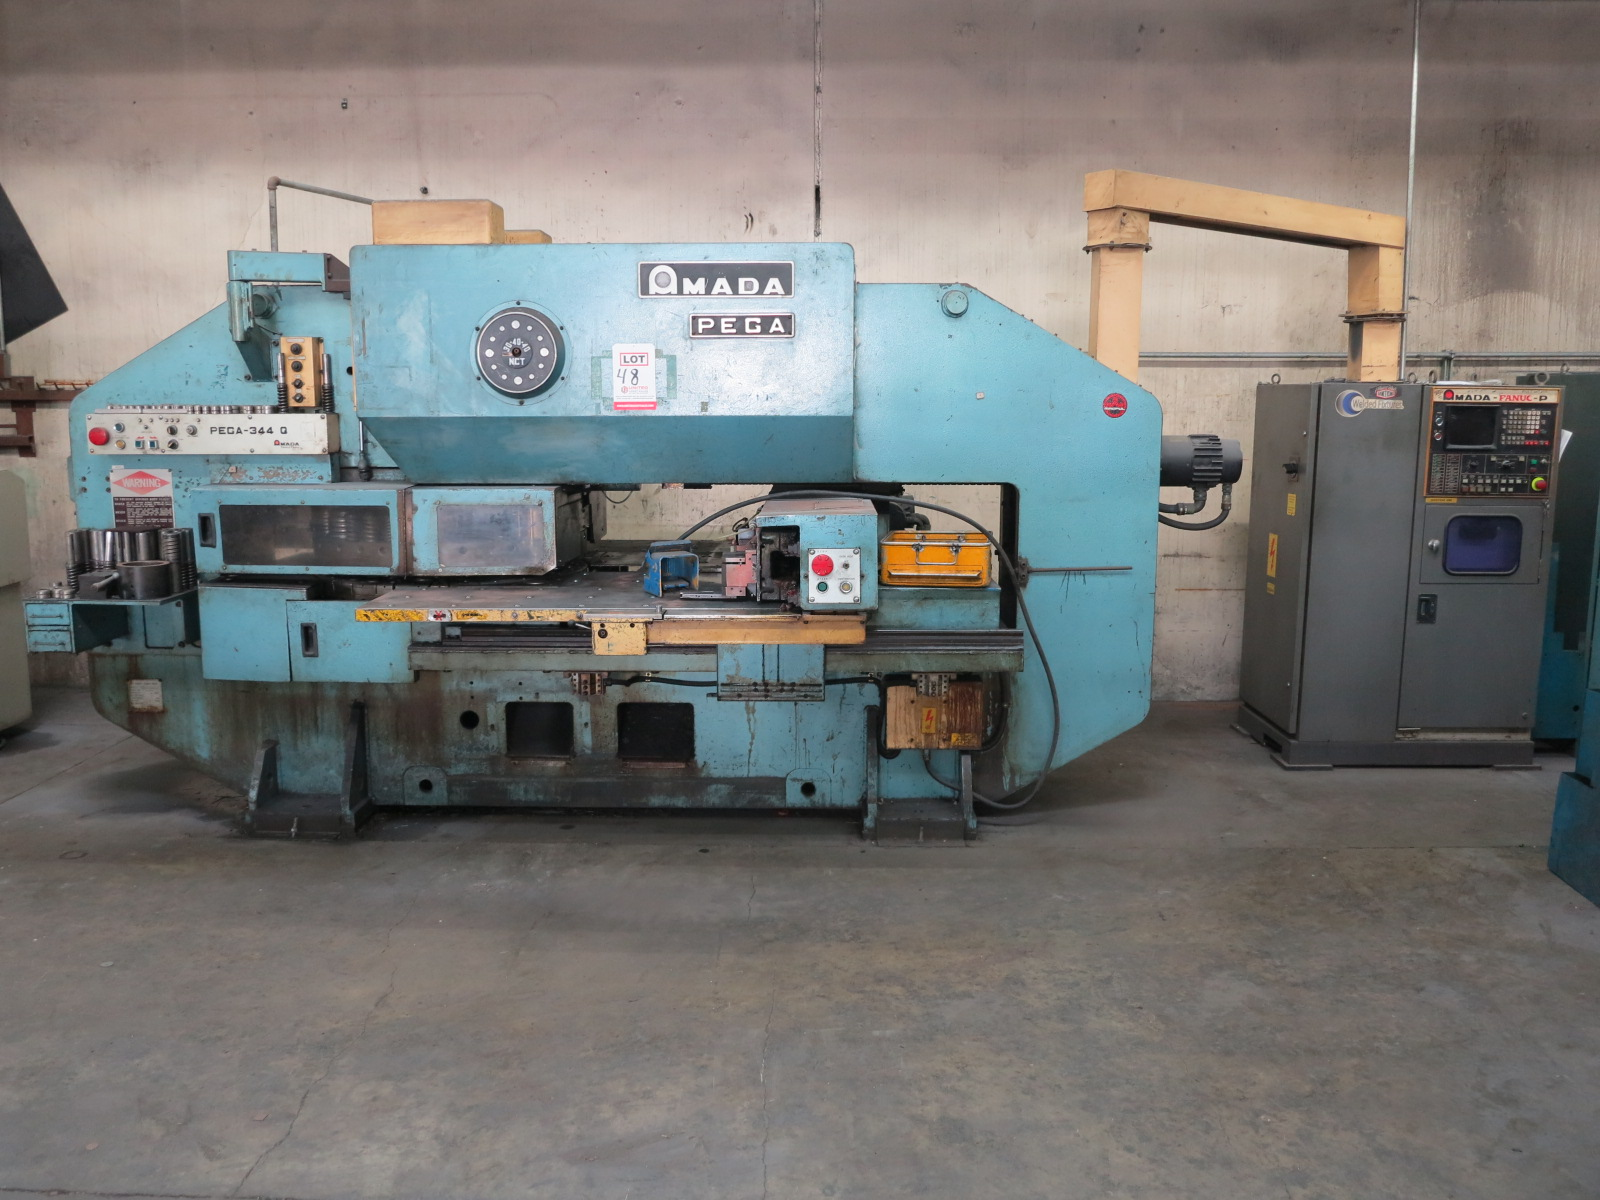 1983 AMADA PEGA 344 QUEEN TURRET PUNCH, 30-TON, 56-STATION TURRET, THICK TURRET, S/N AH440115 - Image 2 of 5